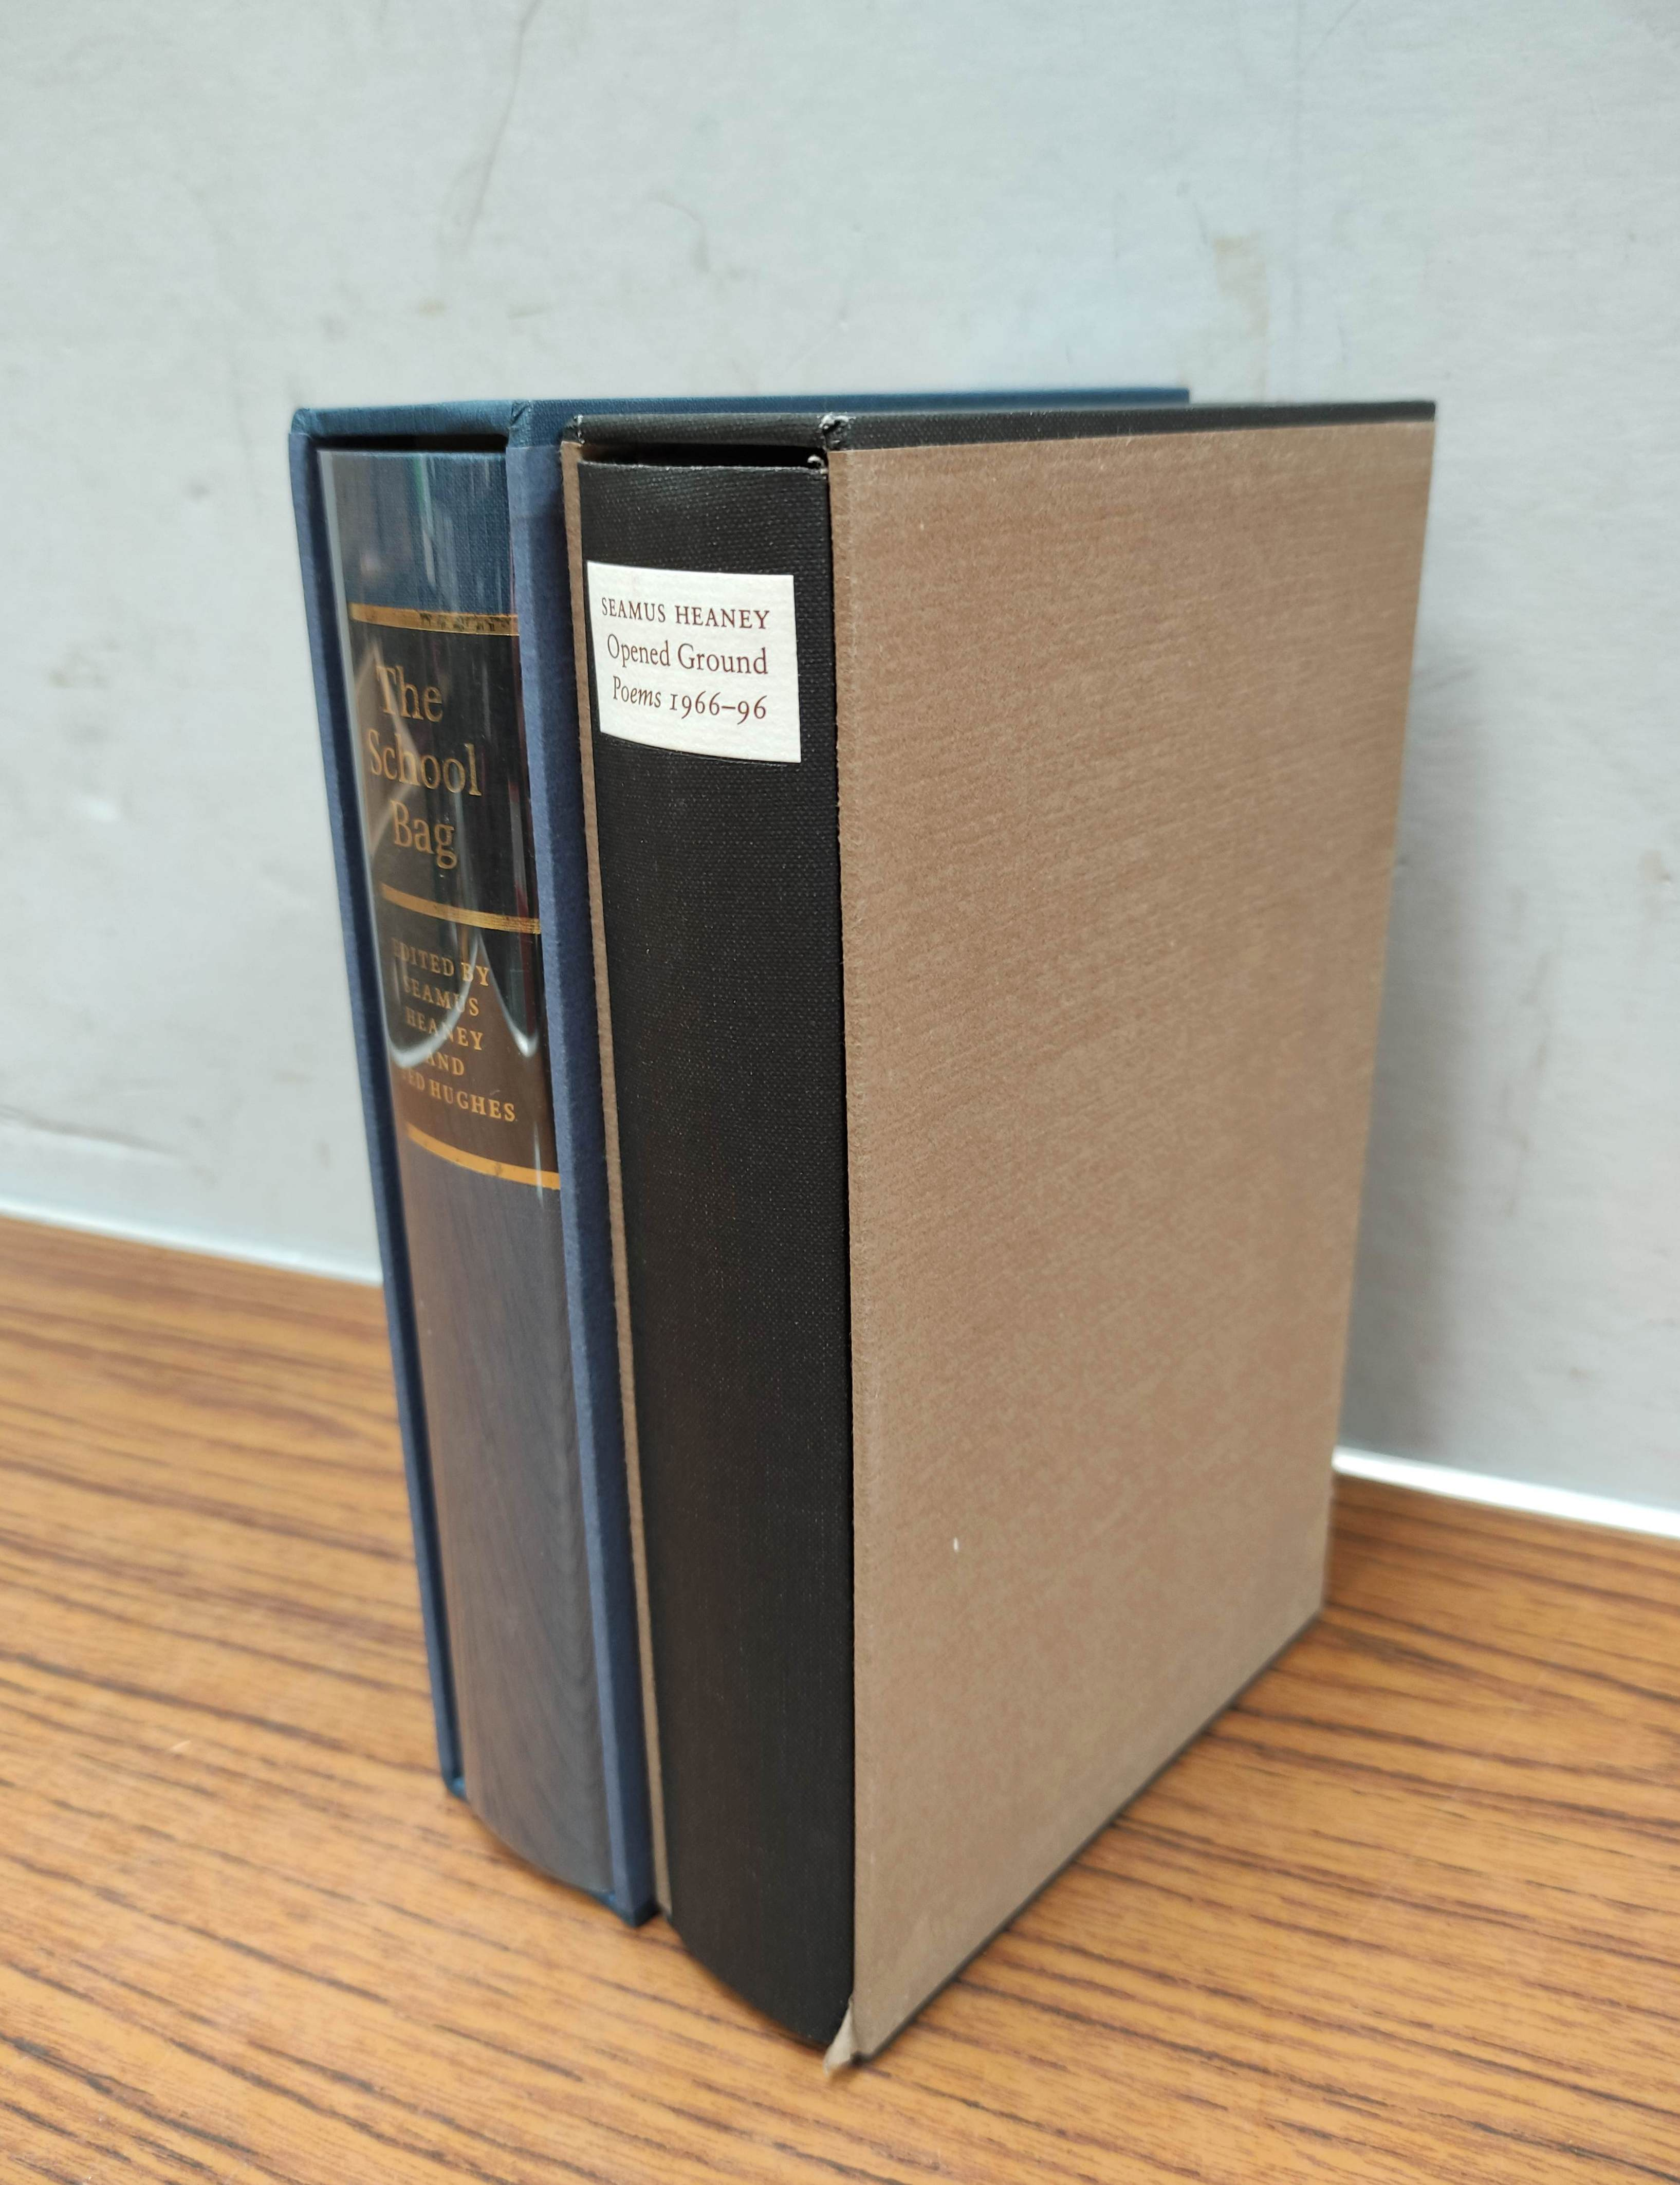 HEANEY SEAMUS. The School Bag. Ltd. ed. 61/300 signed by Heaney & Ted Hughes. Orig. blue & yellow